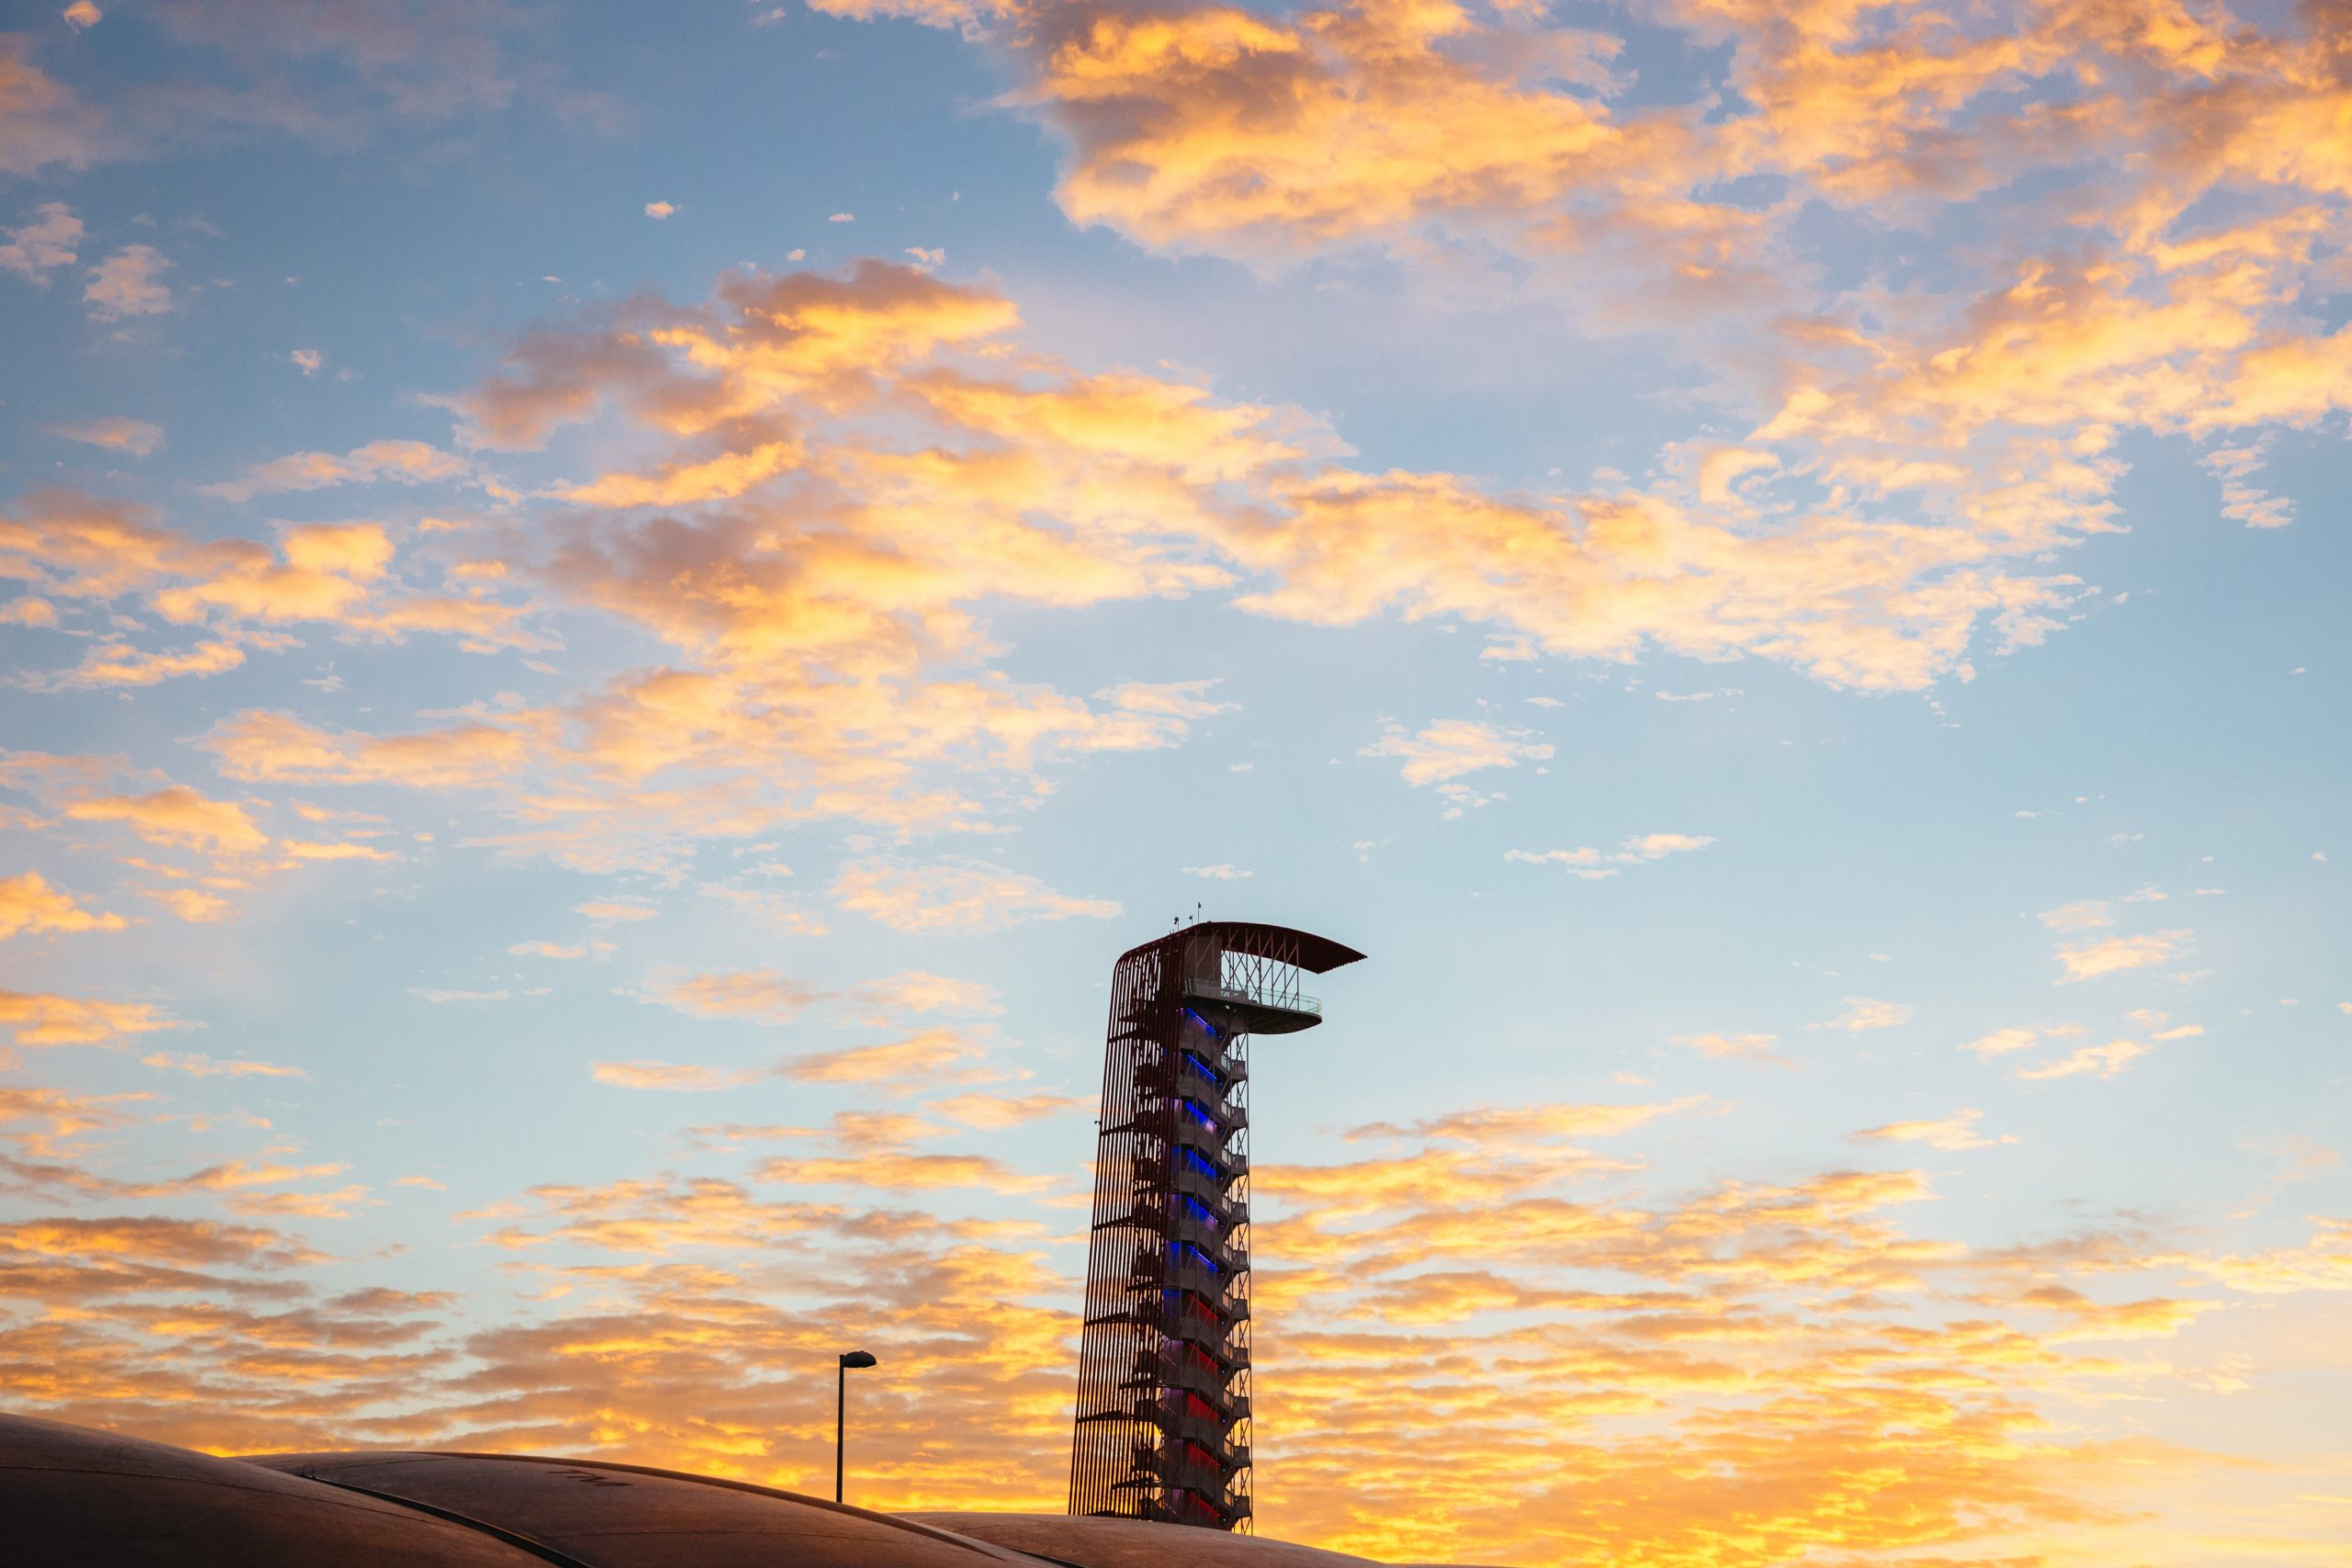 The iconic COTA Tower at sunrise on race day. Just because this is a motorsport event doesn't mean you can have a typical Texas Highways landscape.